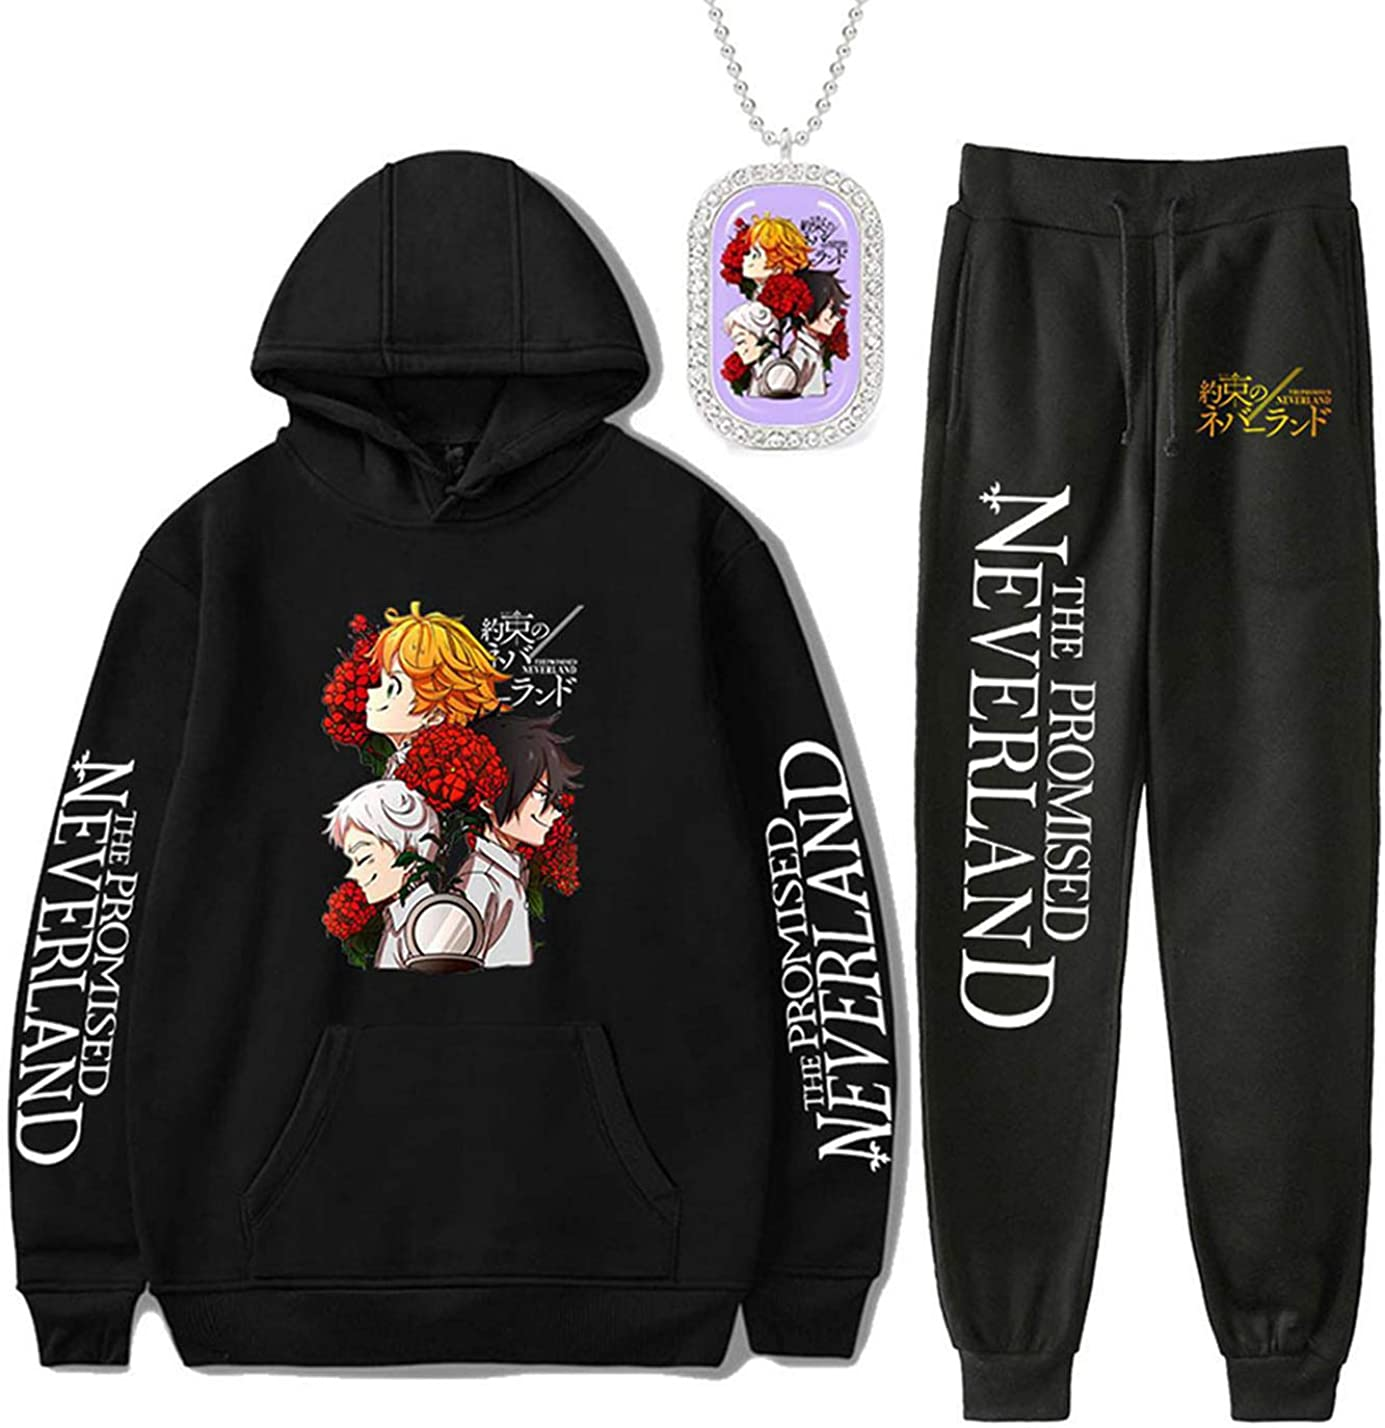 Max 73% OFF Anime The 40% OFF Cheap Sale Promised Neverland Sweatshirt Cosplay Japanese Hoodie